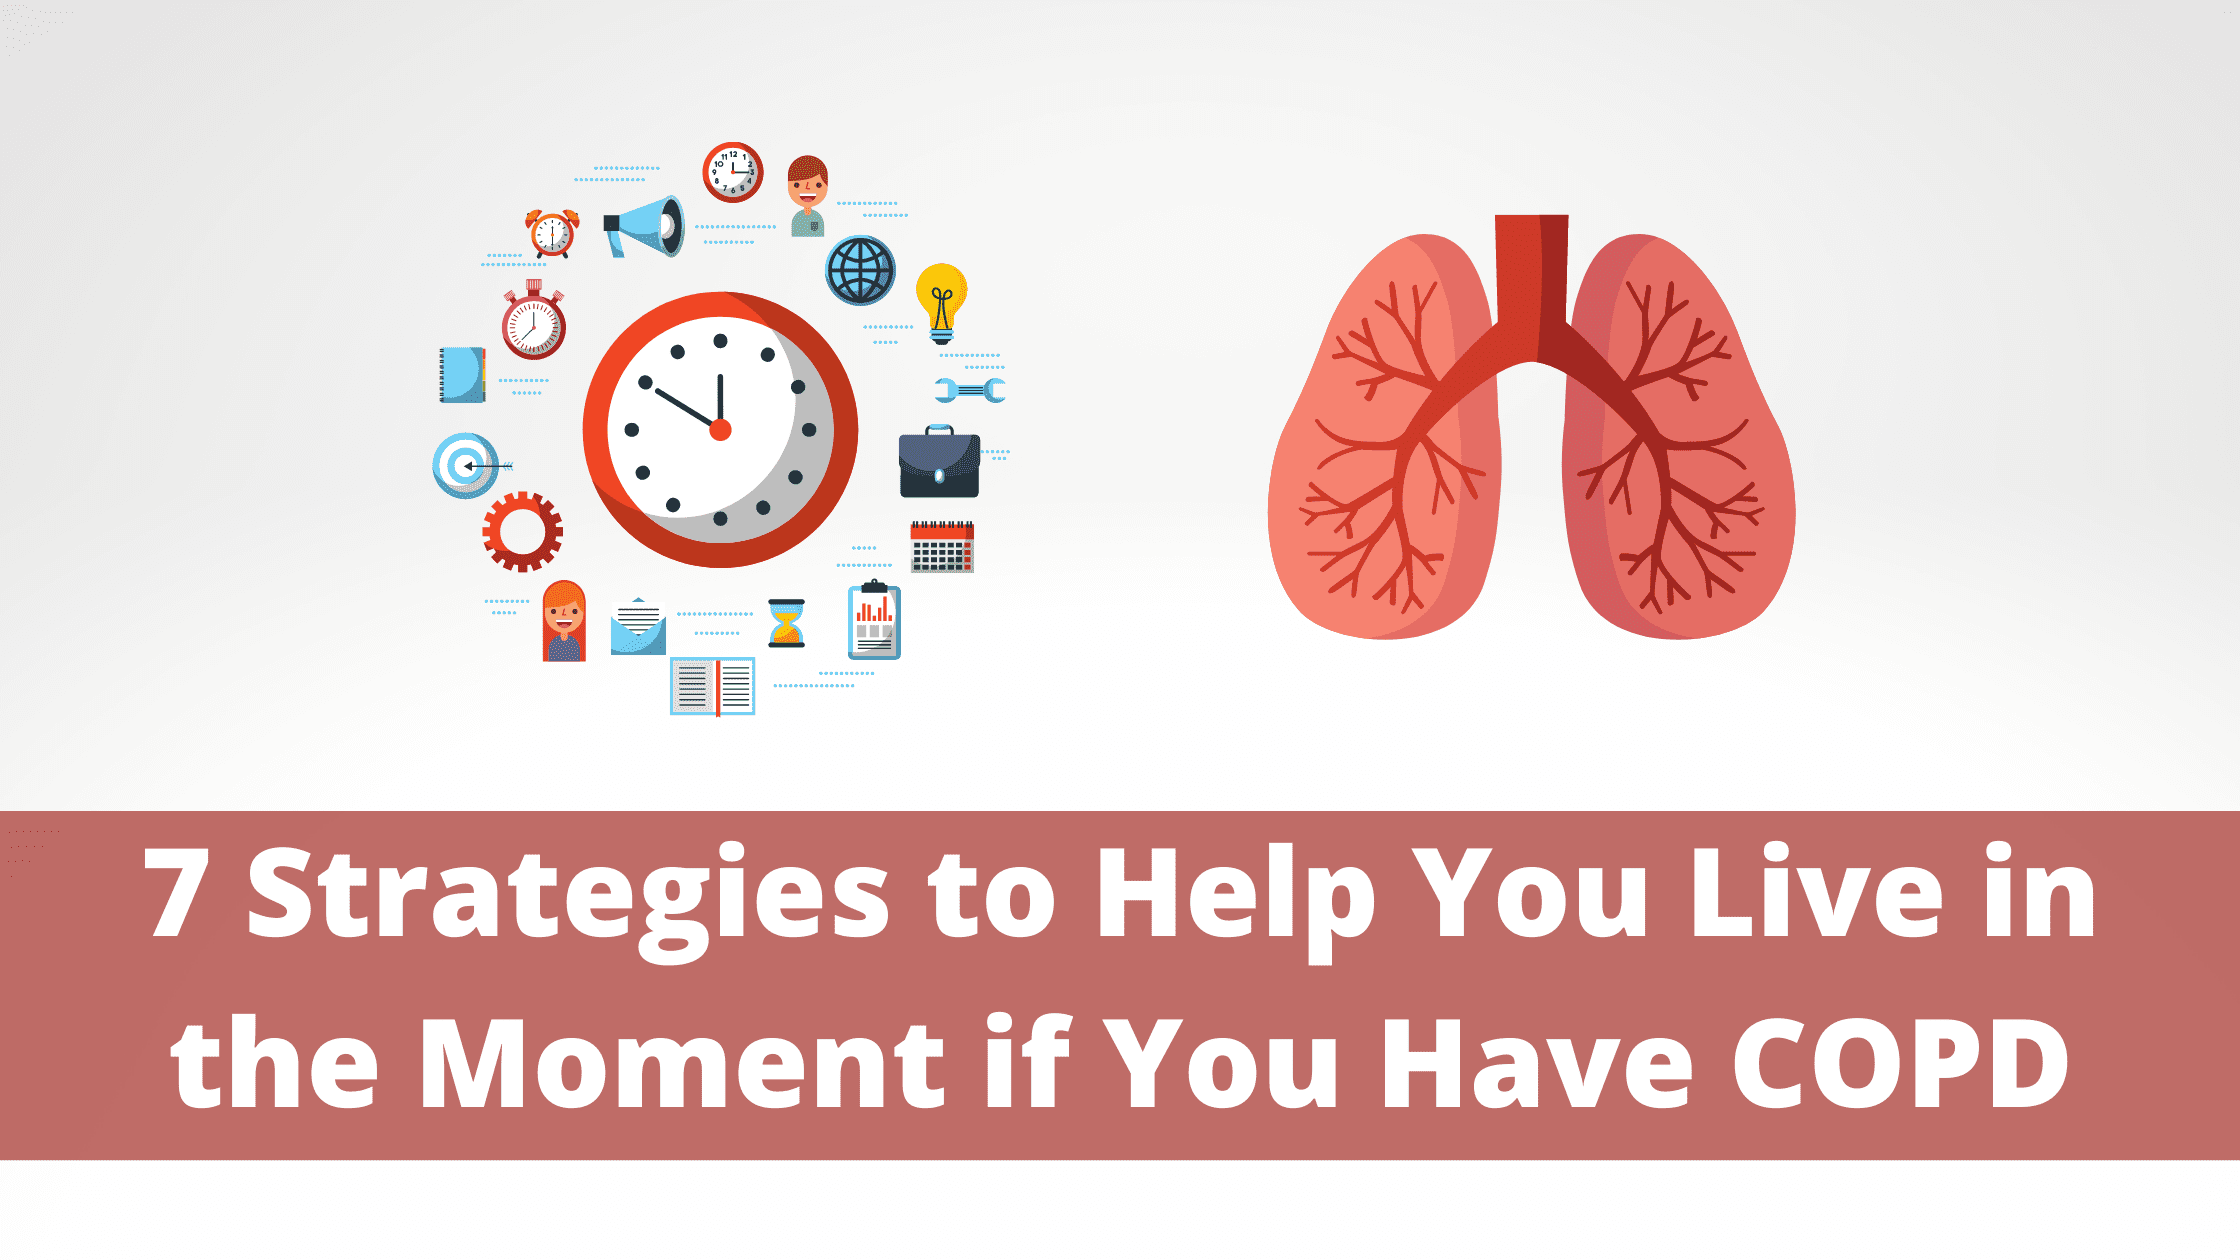 7 Strategies to Help You Live in the Moment if You Have COPD (1)